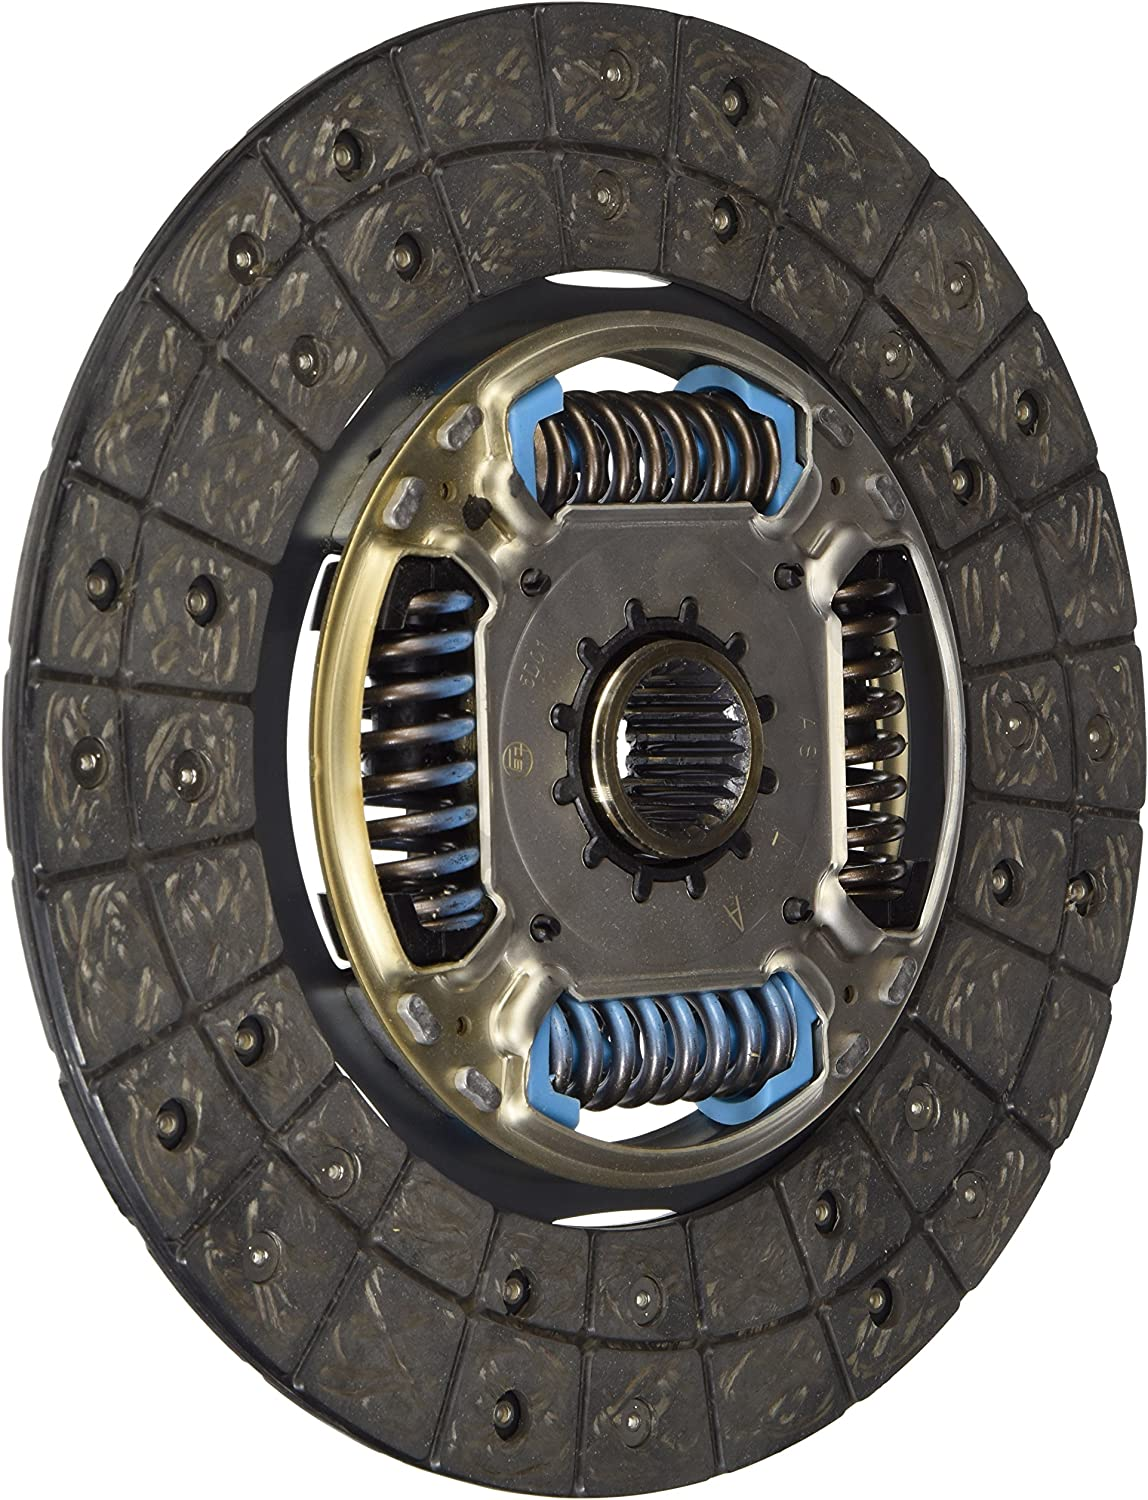 TOYOTA 31250-26231 Clutch Friction Max 43% OFF Disc Limited time cheap sale